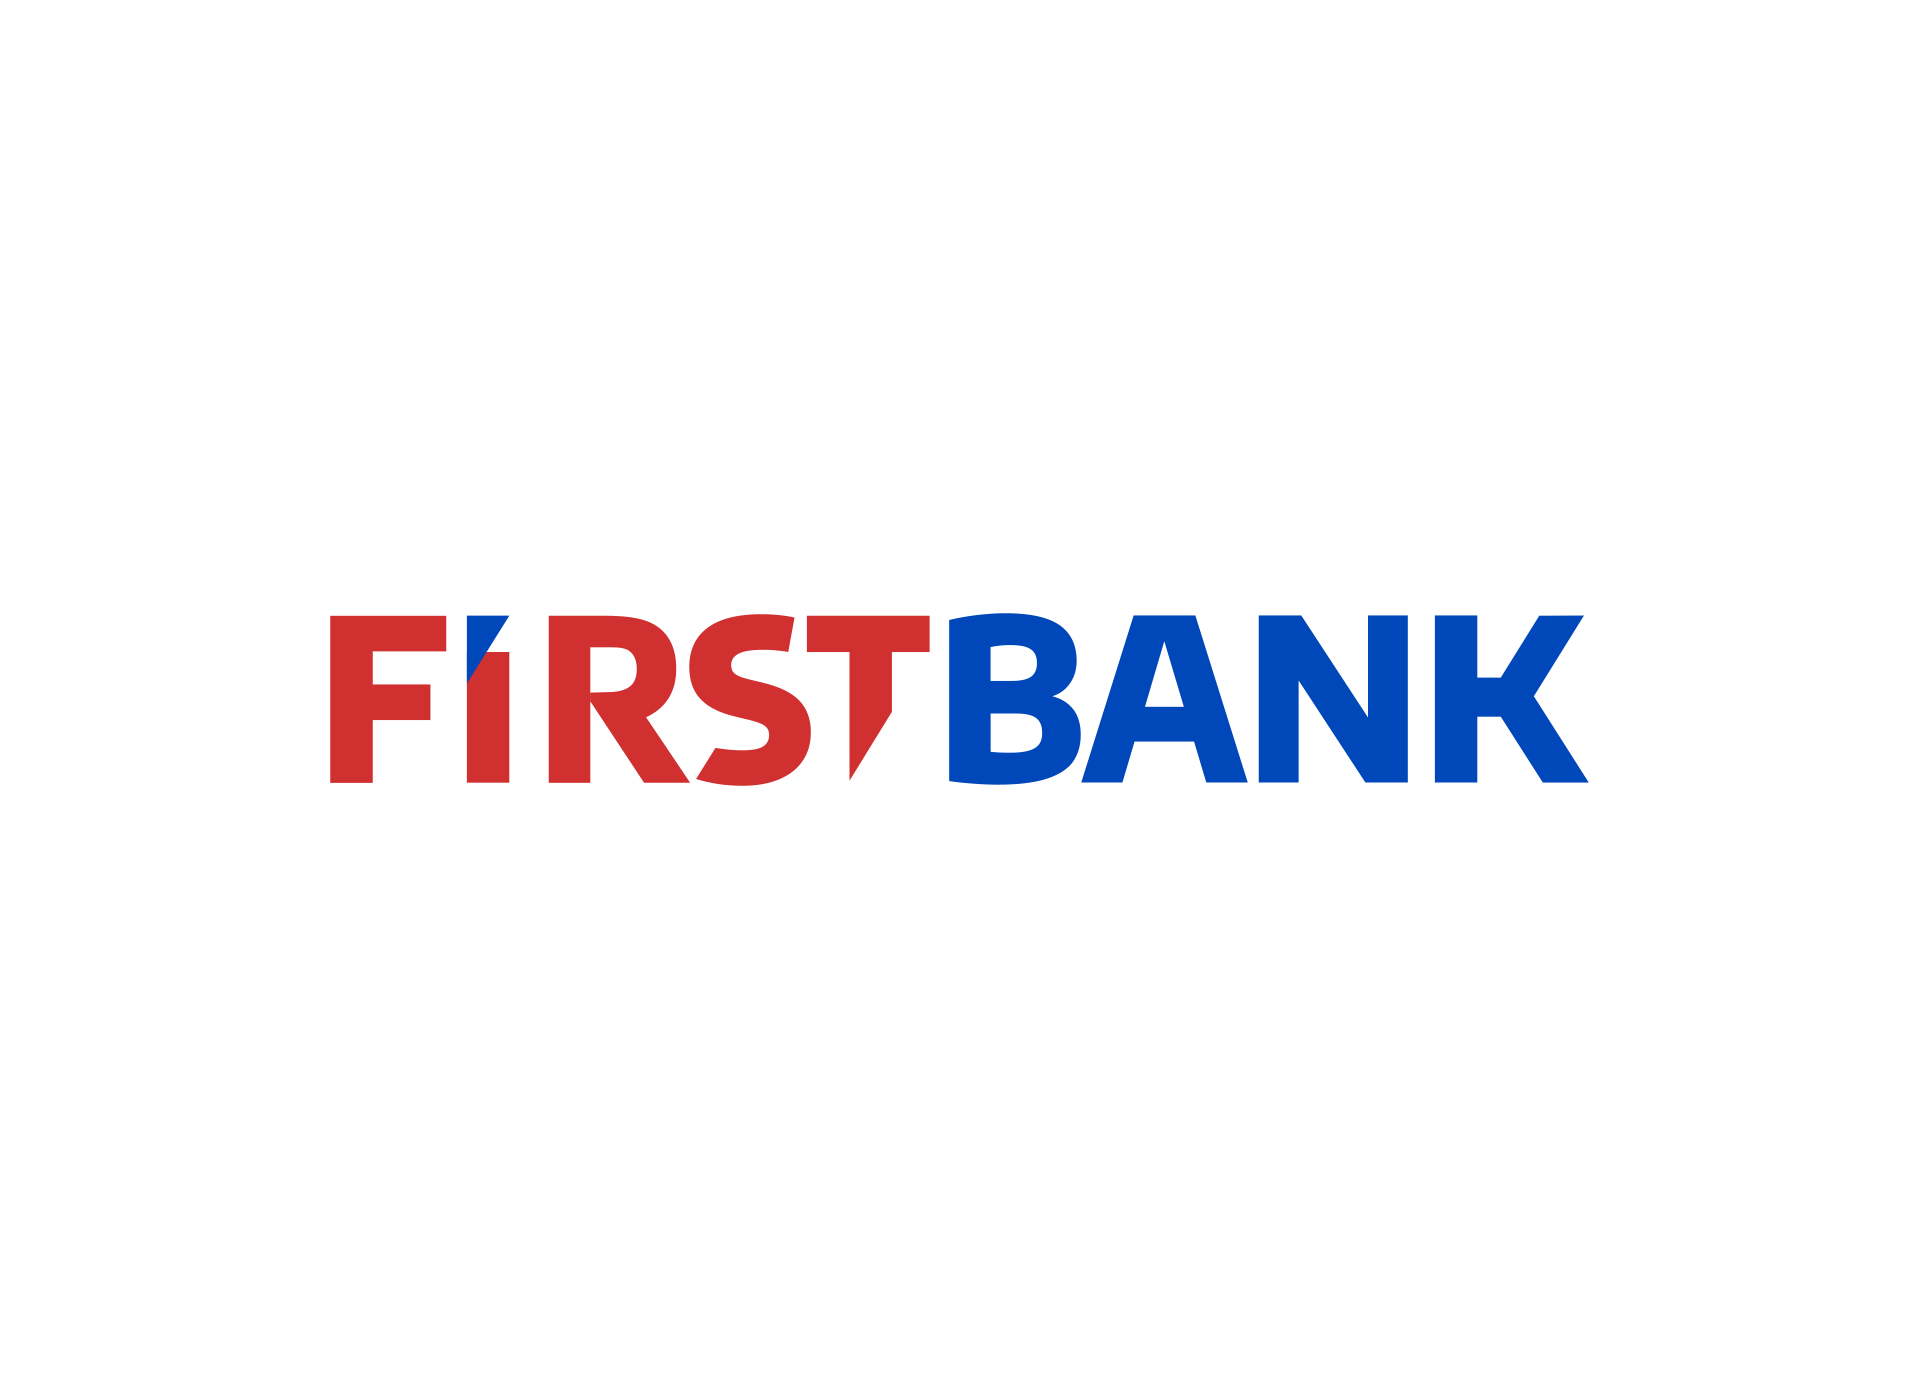 first bank portofoliu inoveo logo